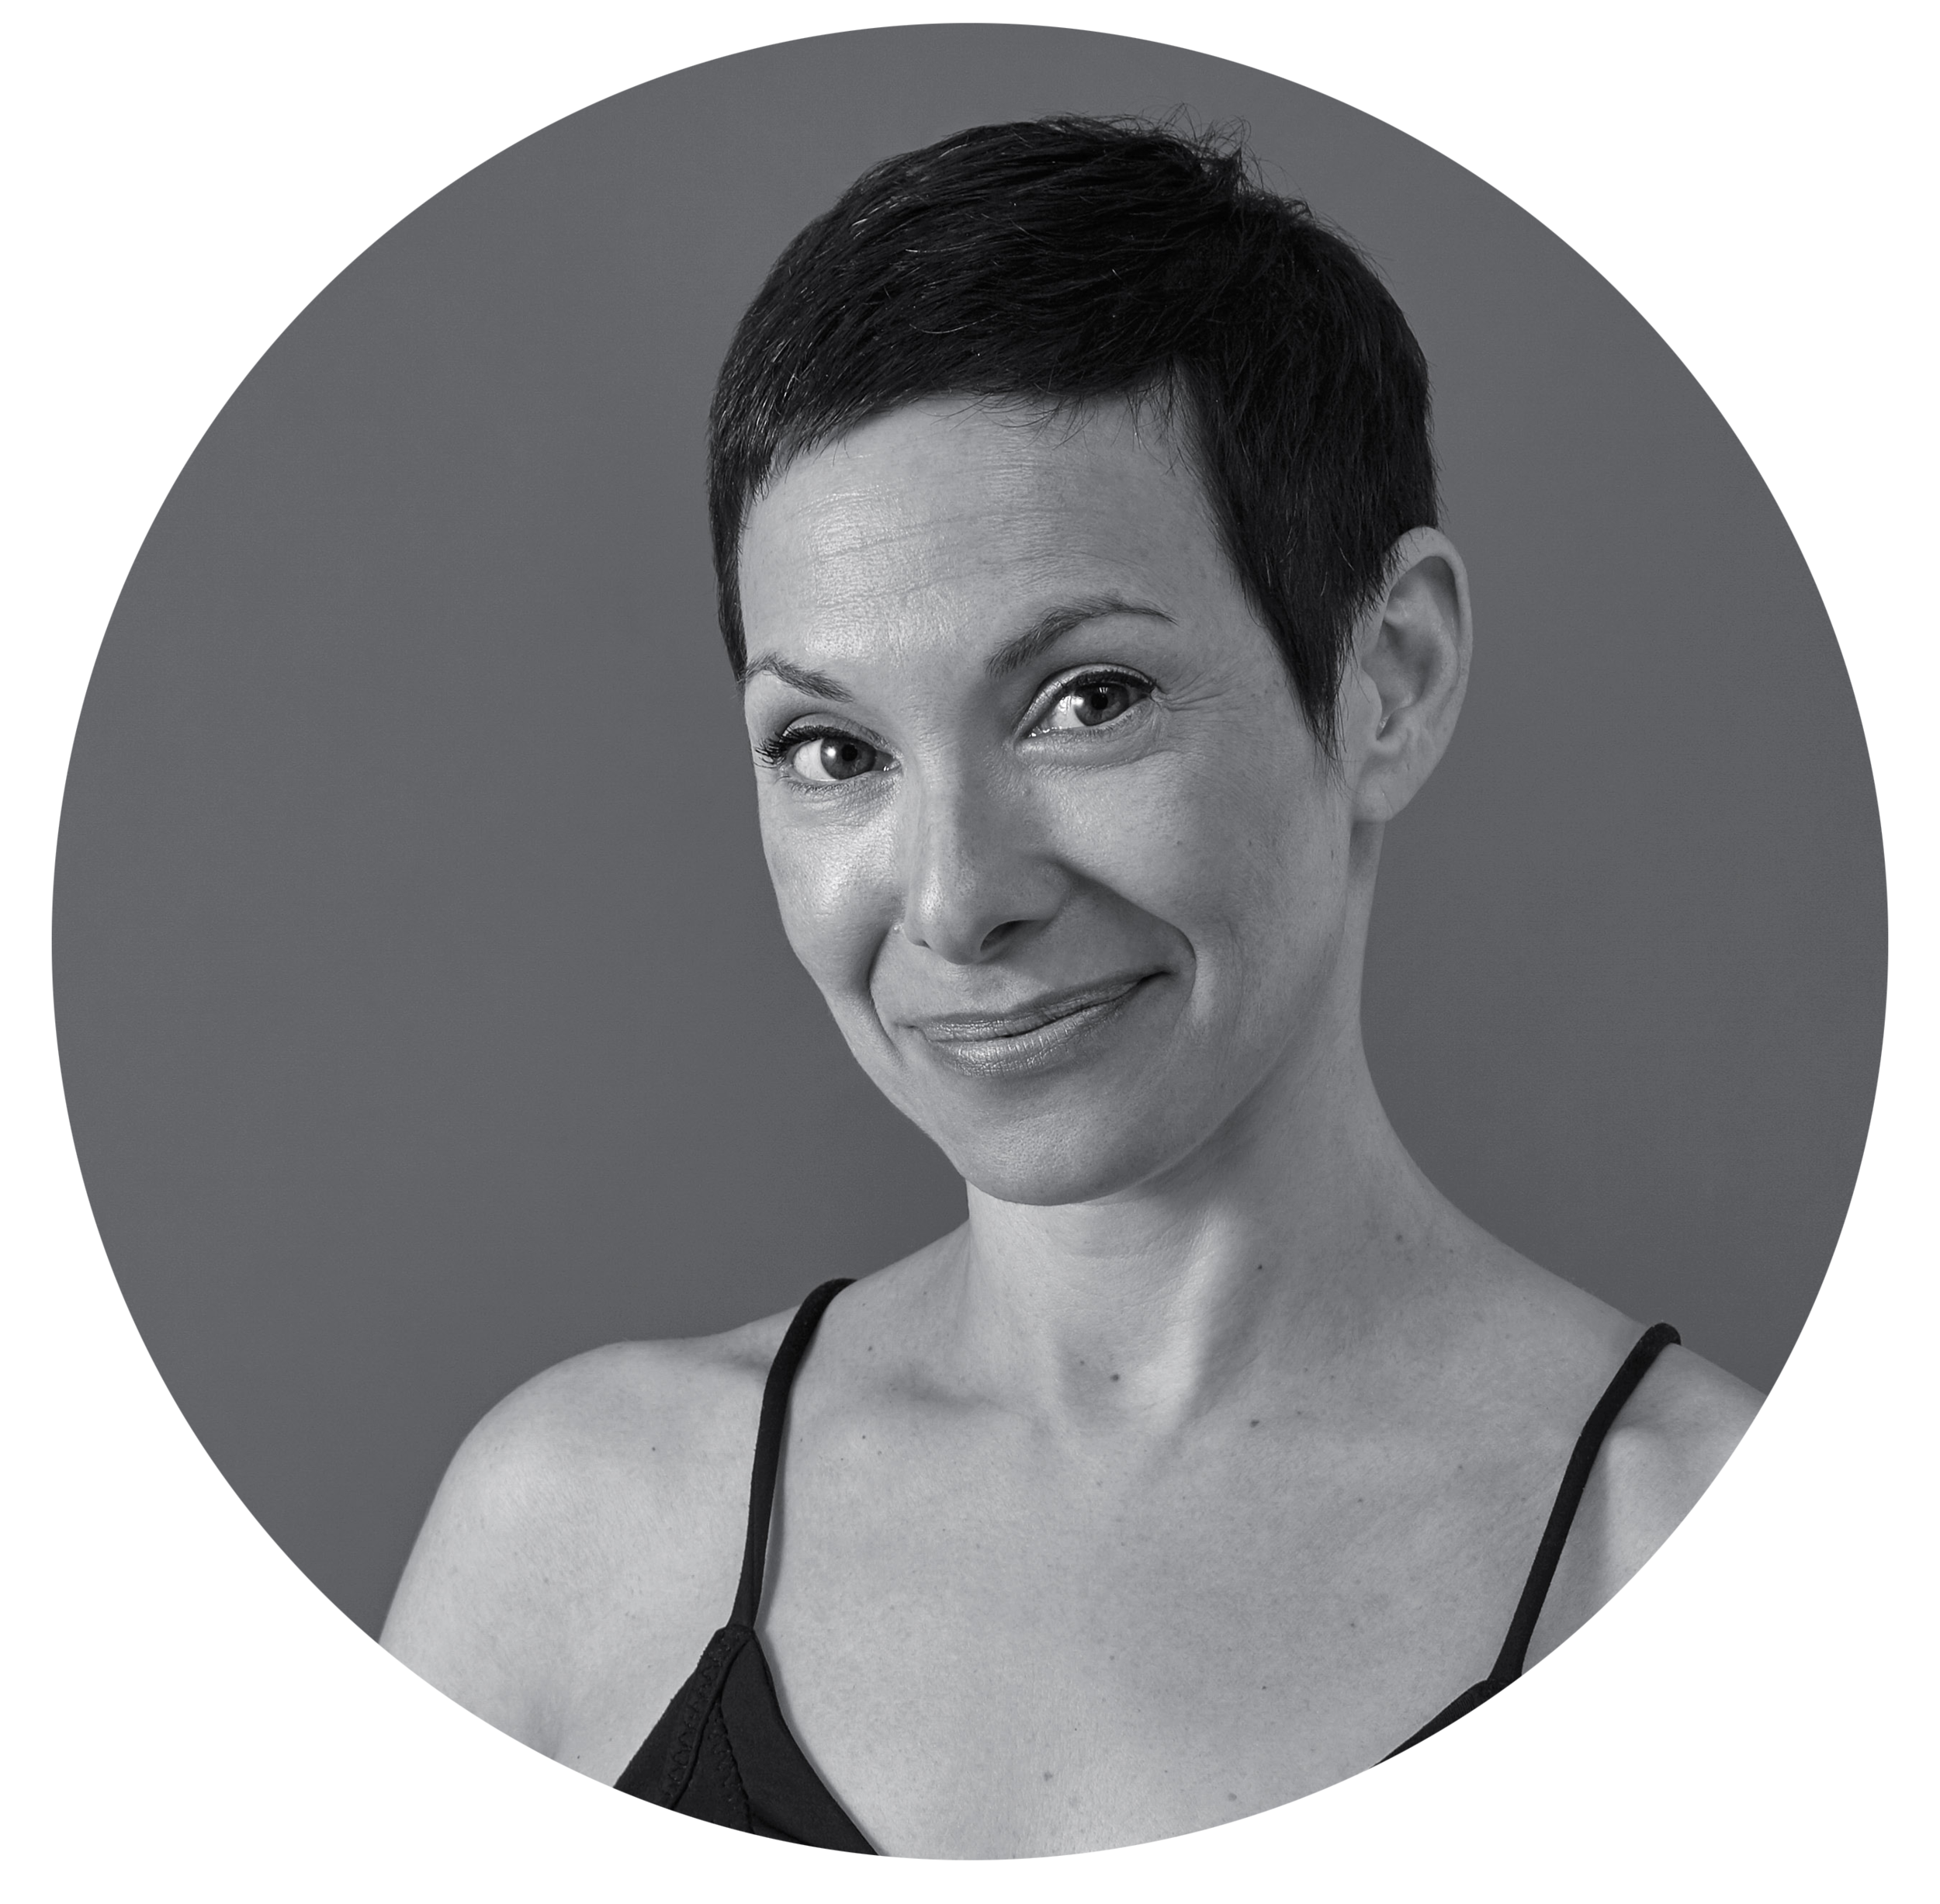 Get to know Shari & The Vertical Workshop -